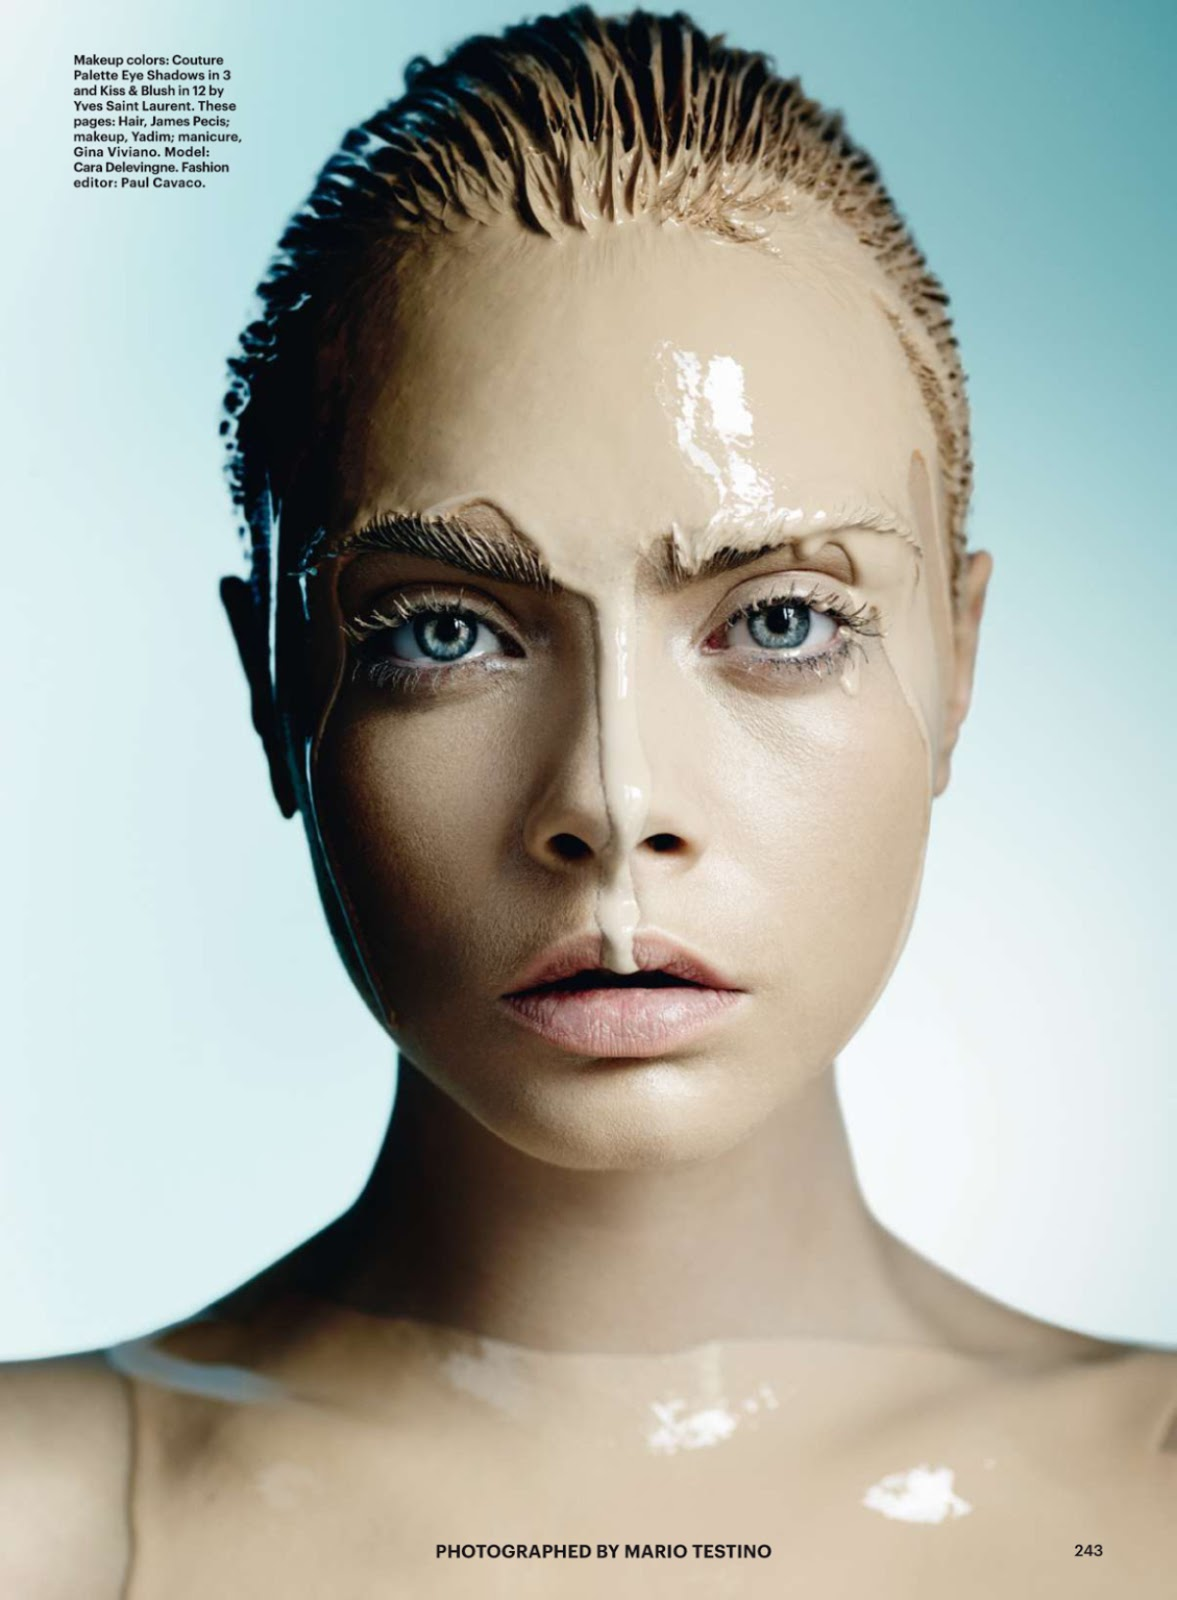 Cara Delevingne In 'Best Of Beauty' By Mario Testino For